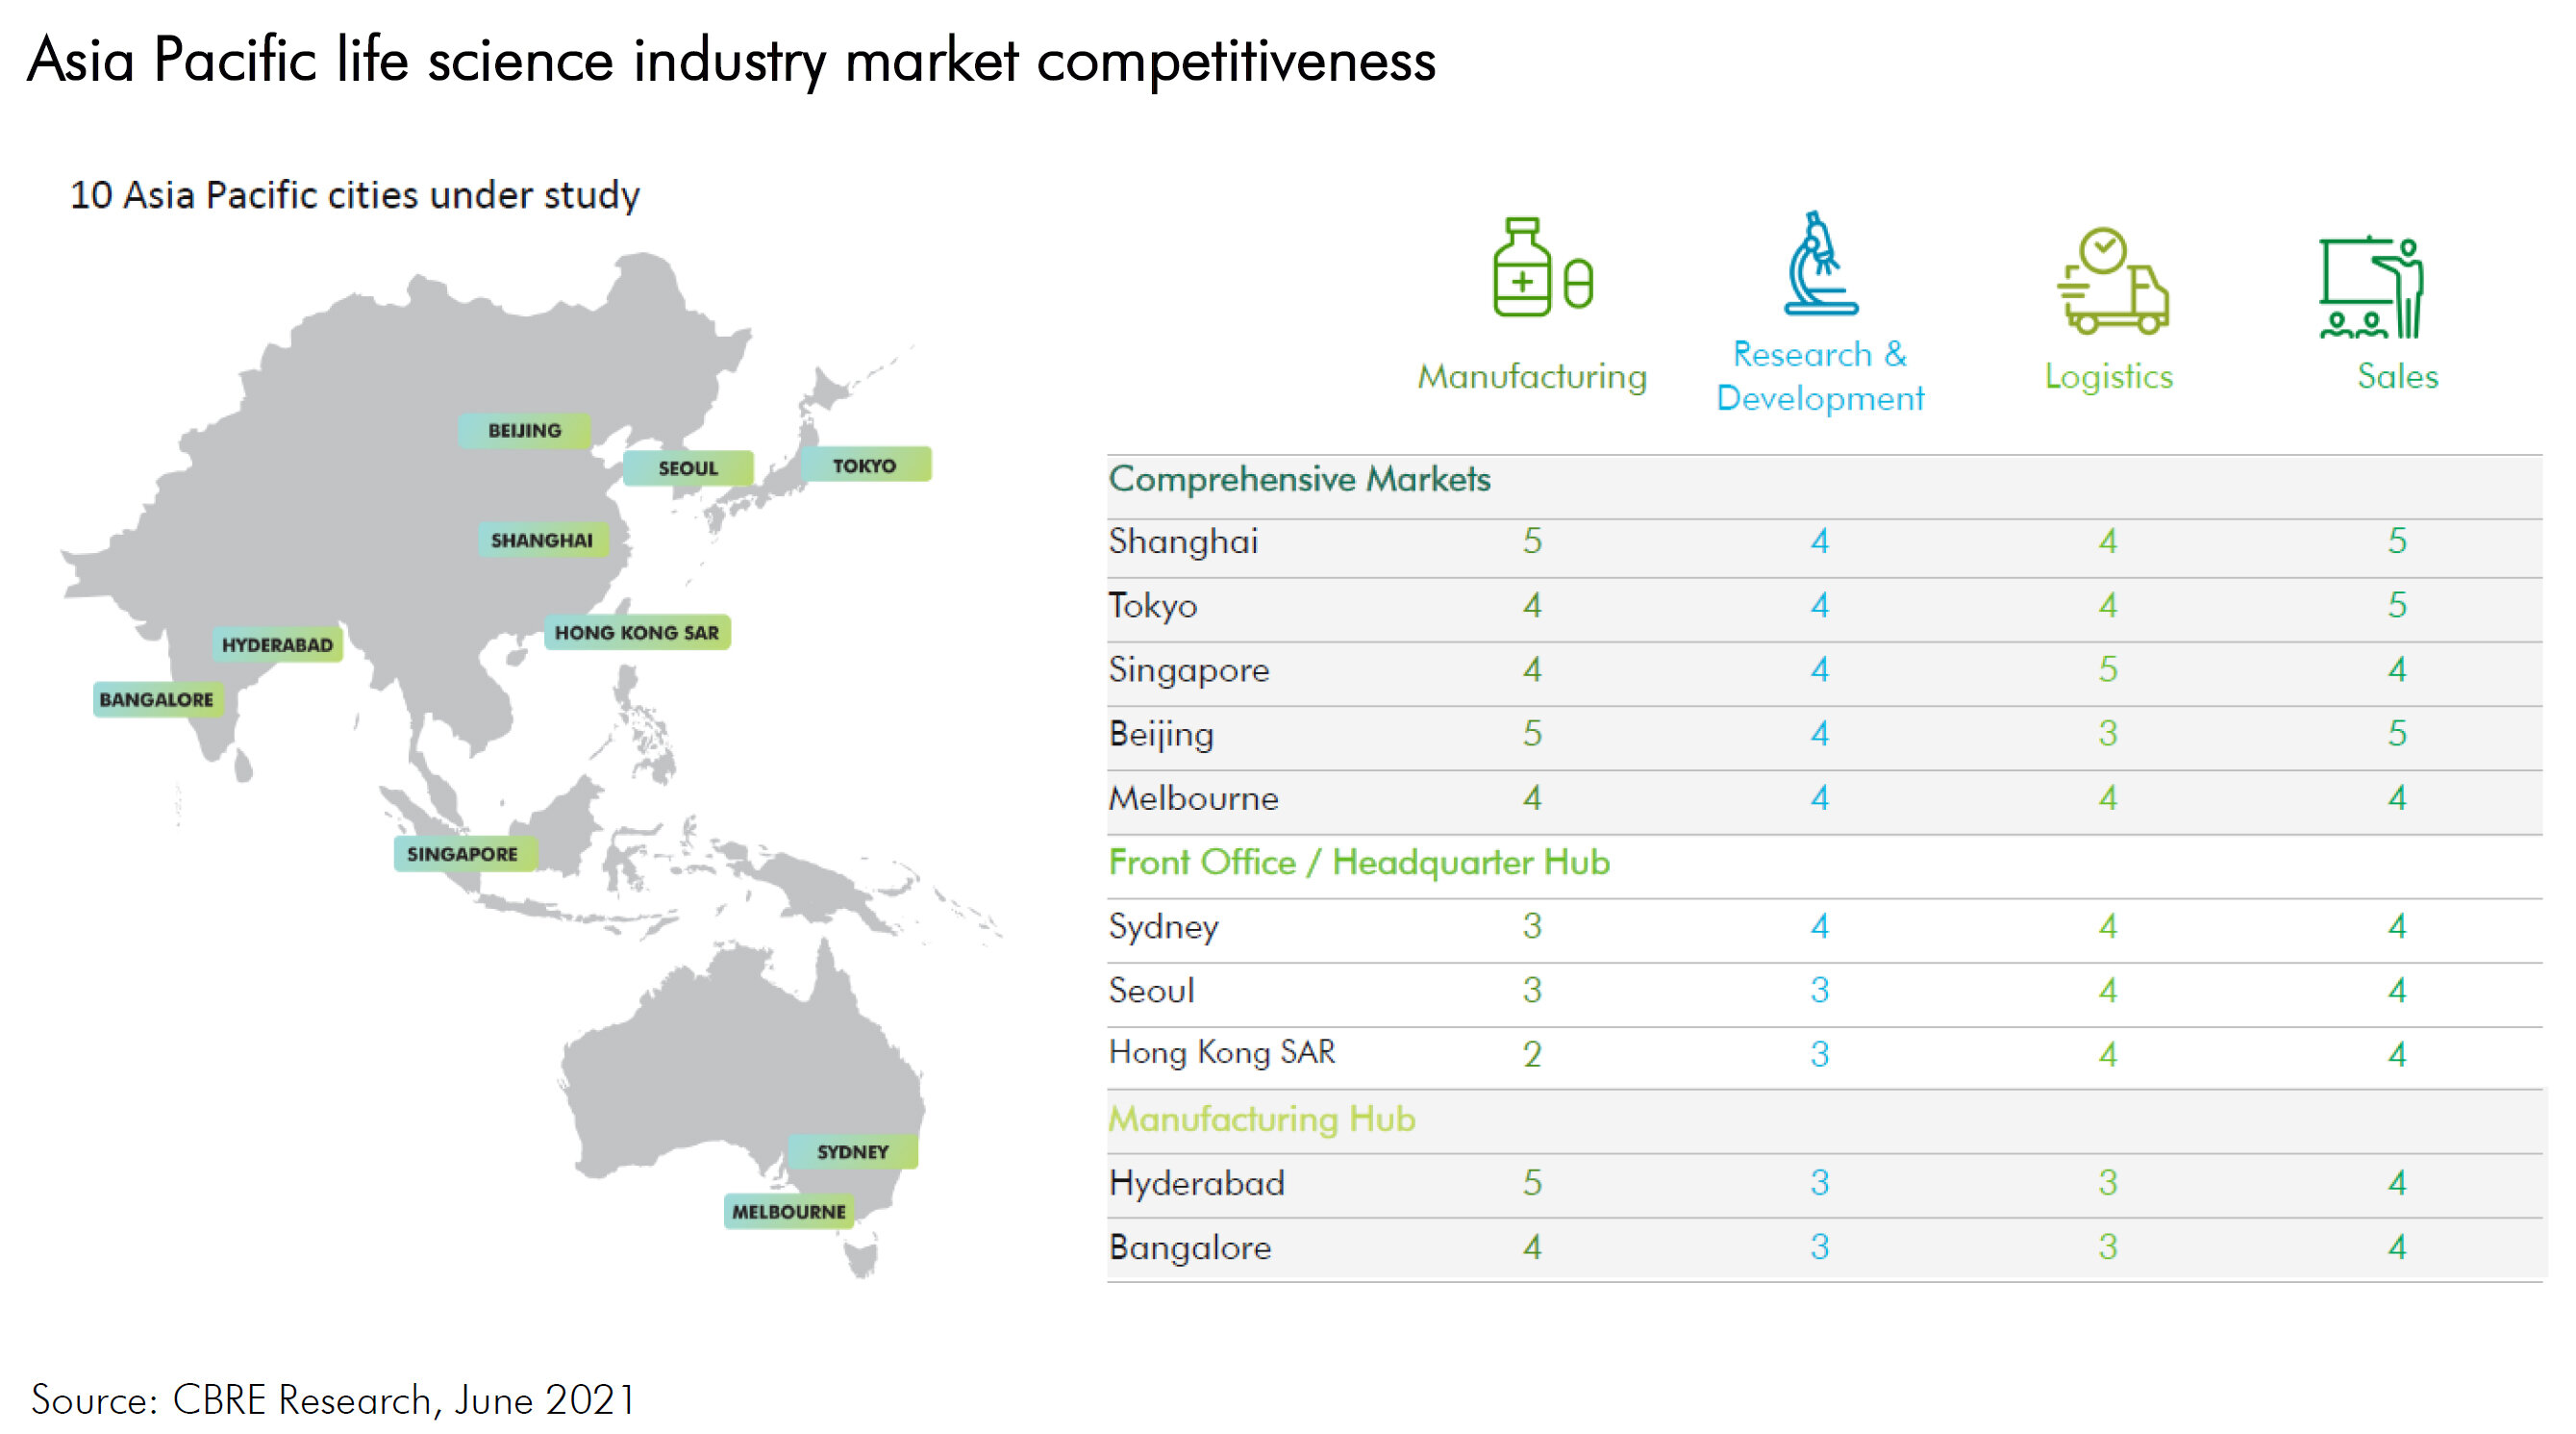 Asia-Pacific-life-science-industry-market-competitiveness.jpg